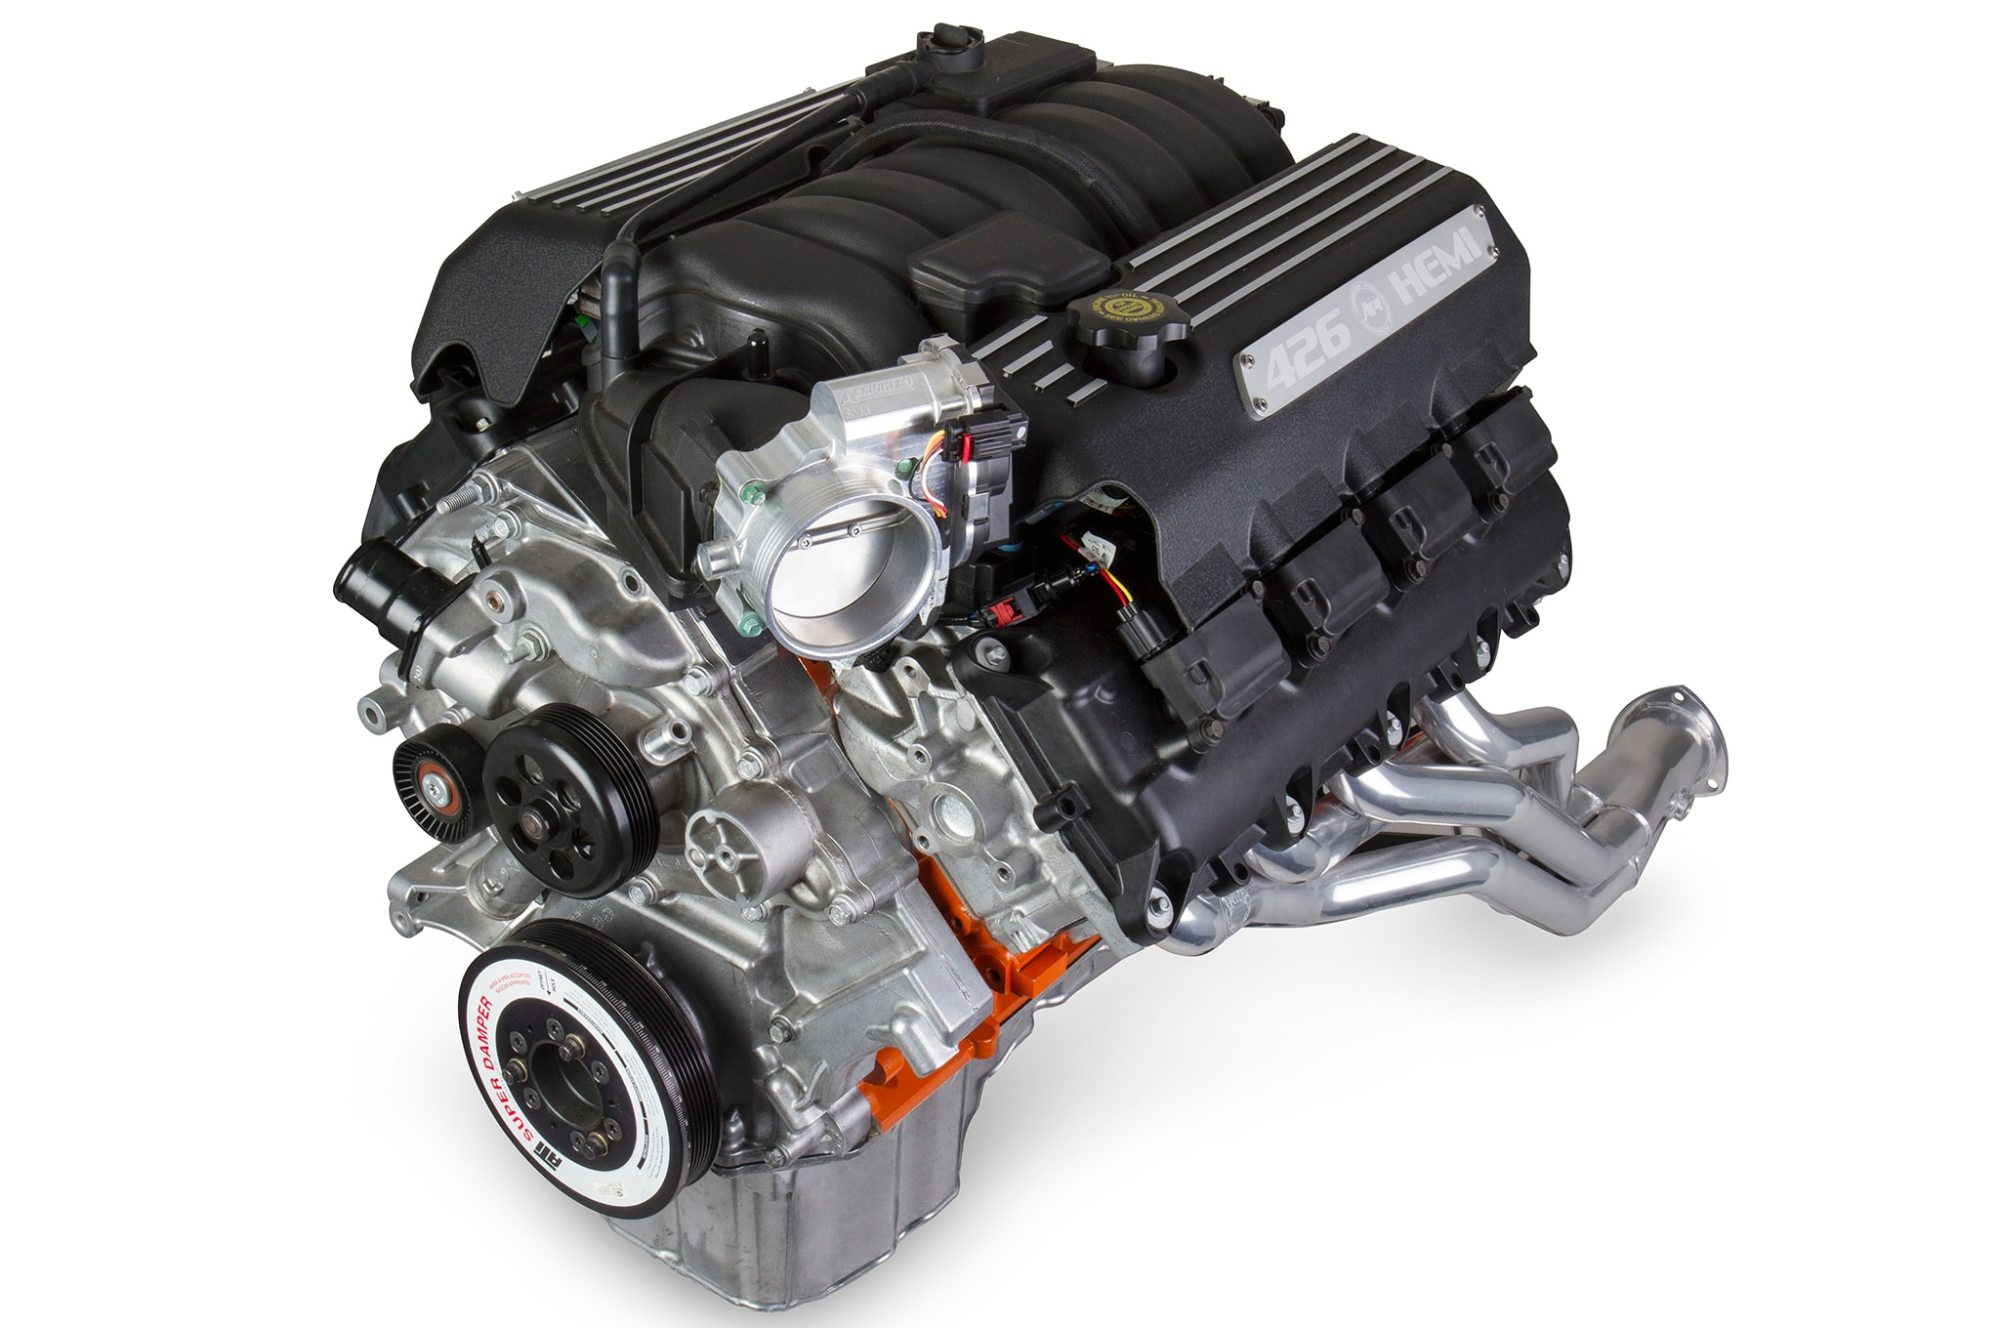 hight resolution of gen 3 hemi holley efi harness hemi engine swaps made simple with new 5 7